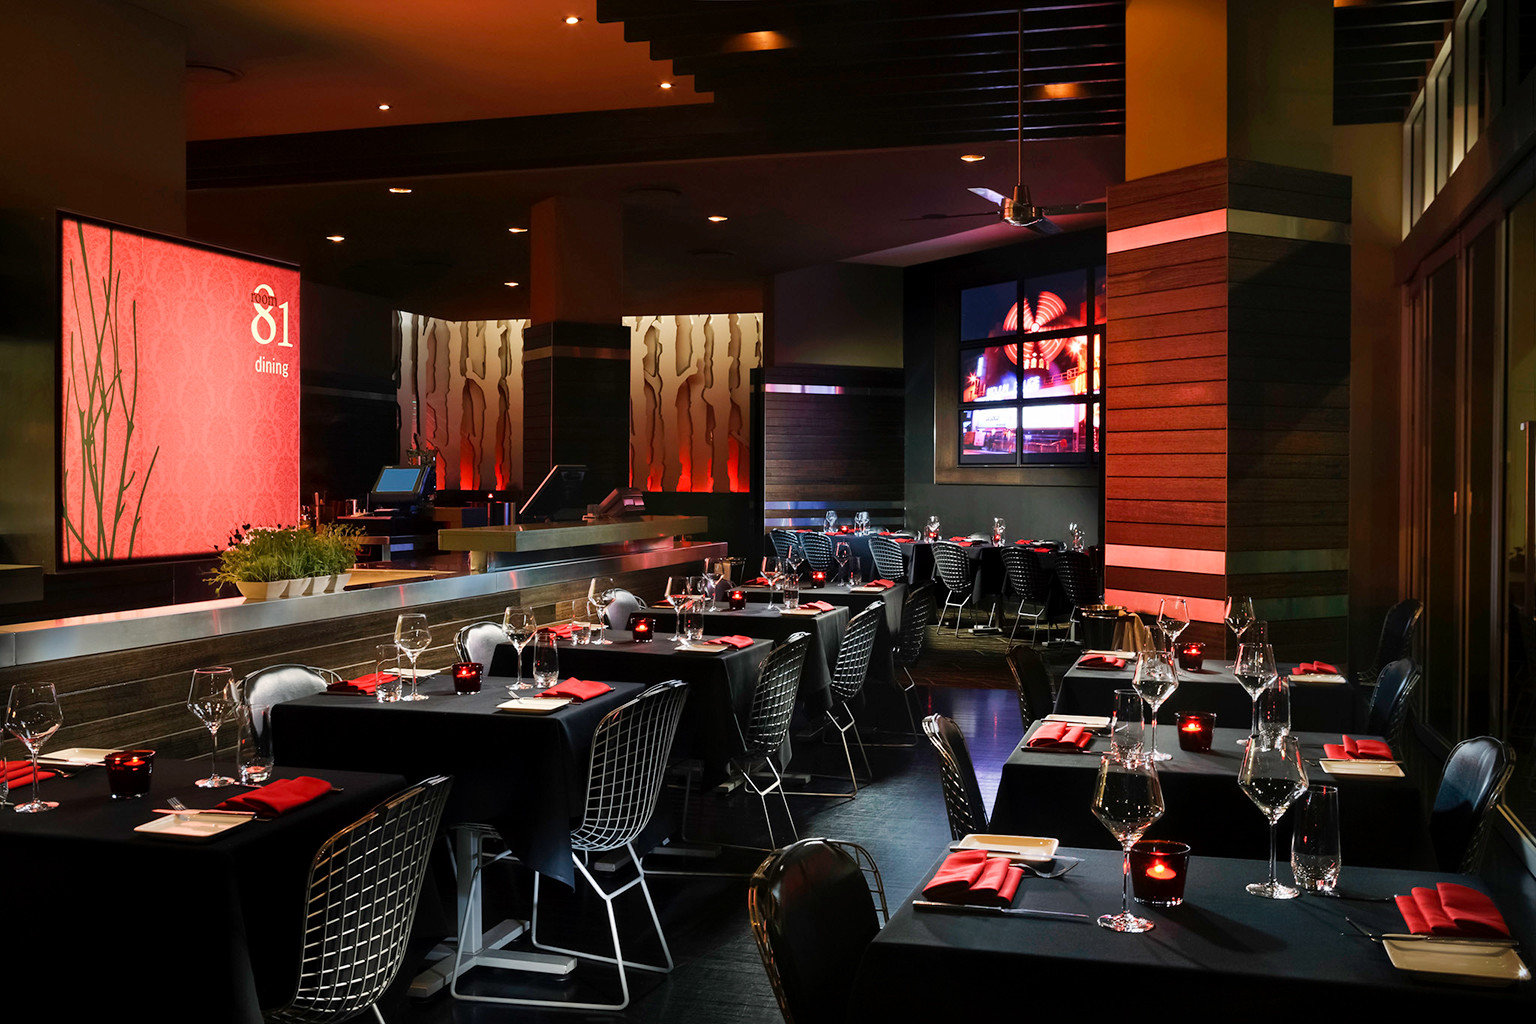 City Dining Drink Eat recreation room stage Bar convention